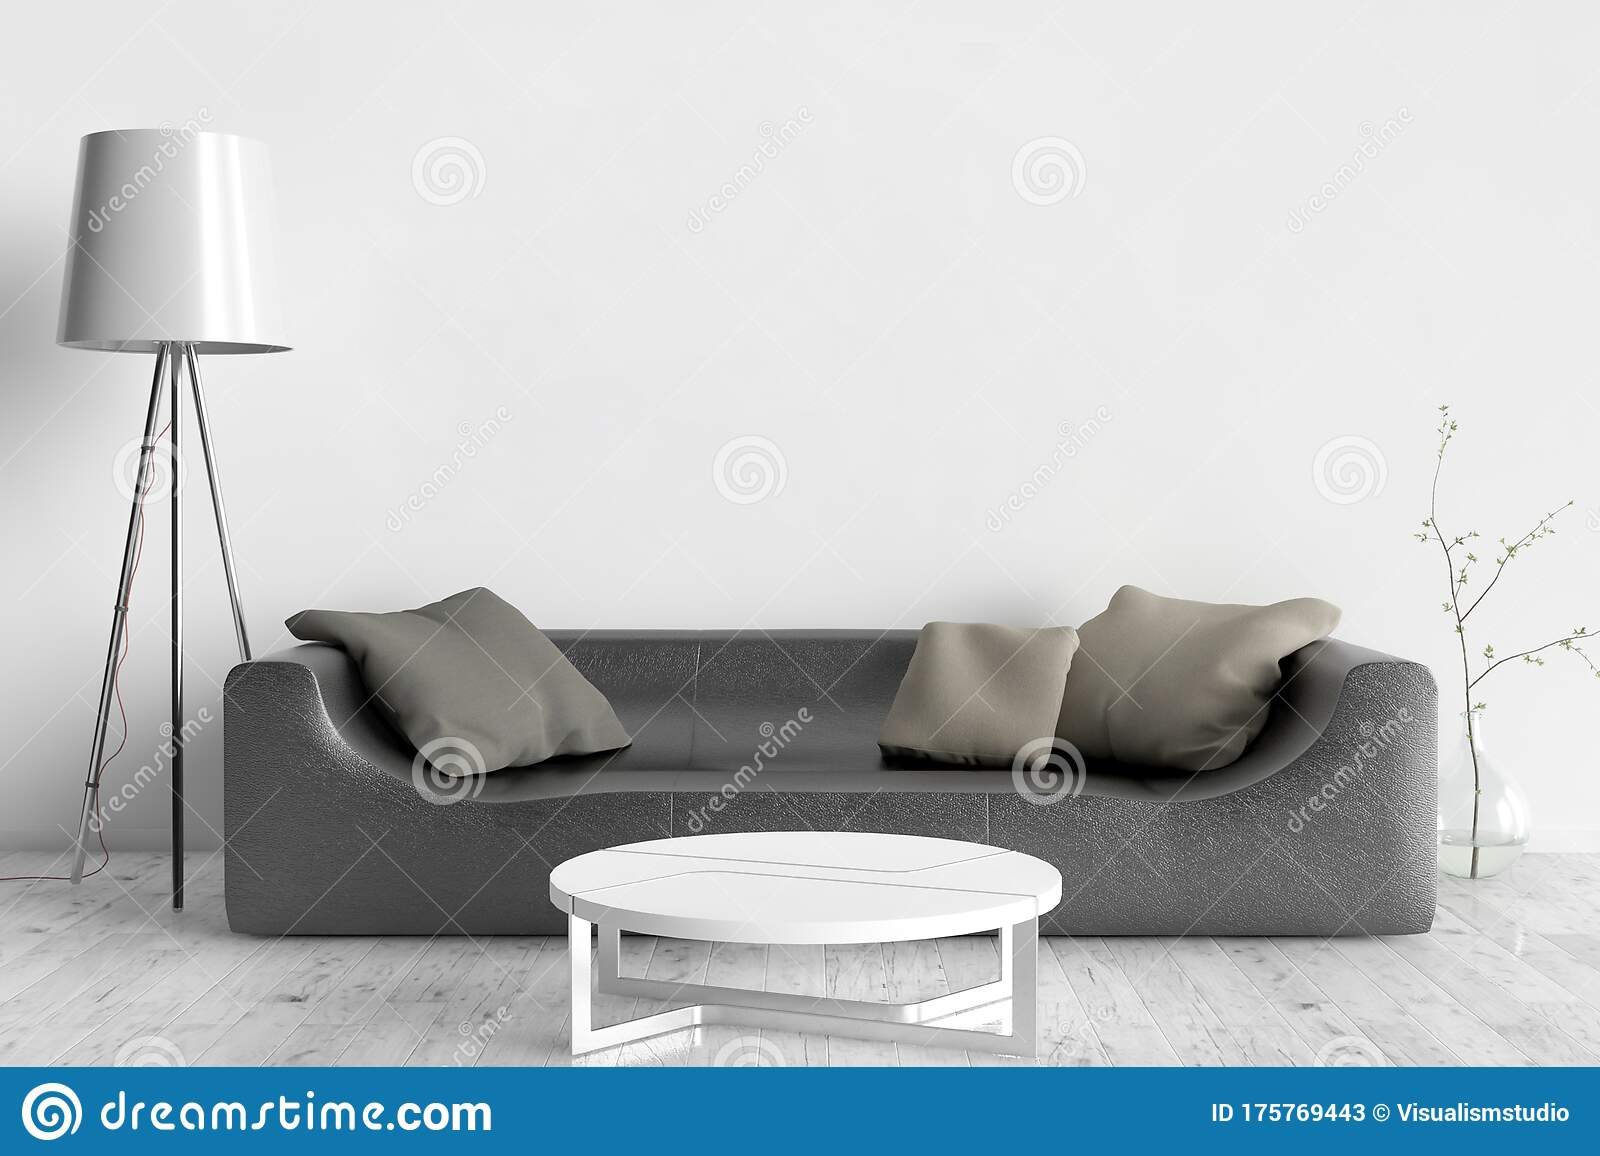 Picture of: Wall Bed And Chair Modern Mid Century Bedside Table And White Bed On White Wall Background Stock Image Image Of House Lamp 175769443